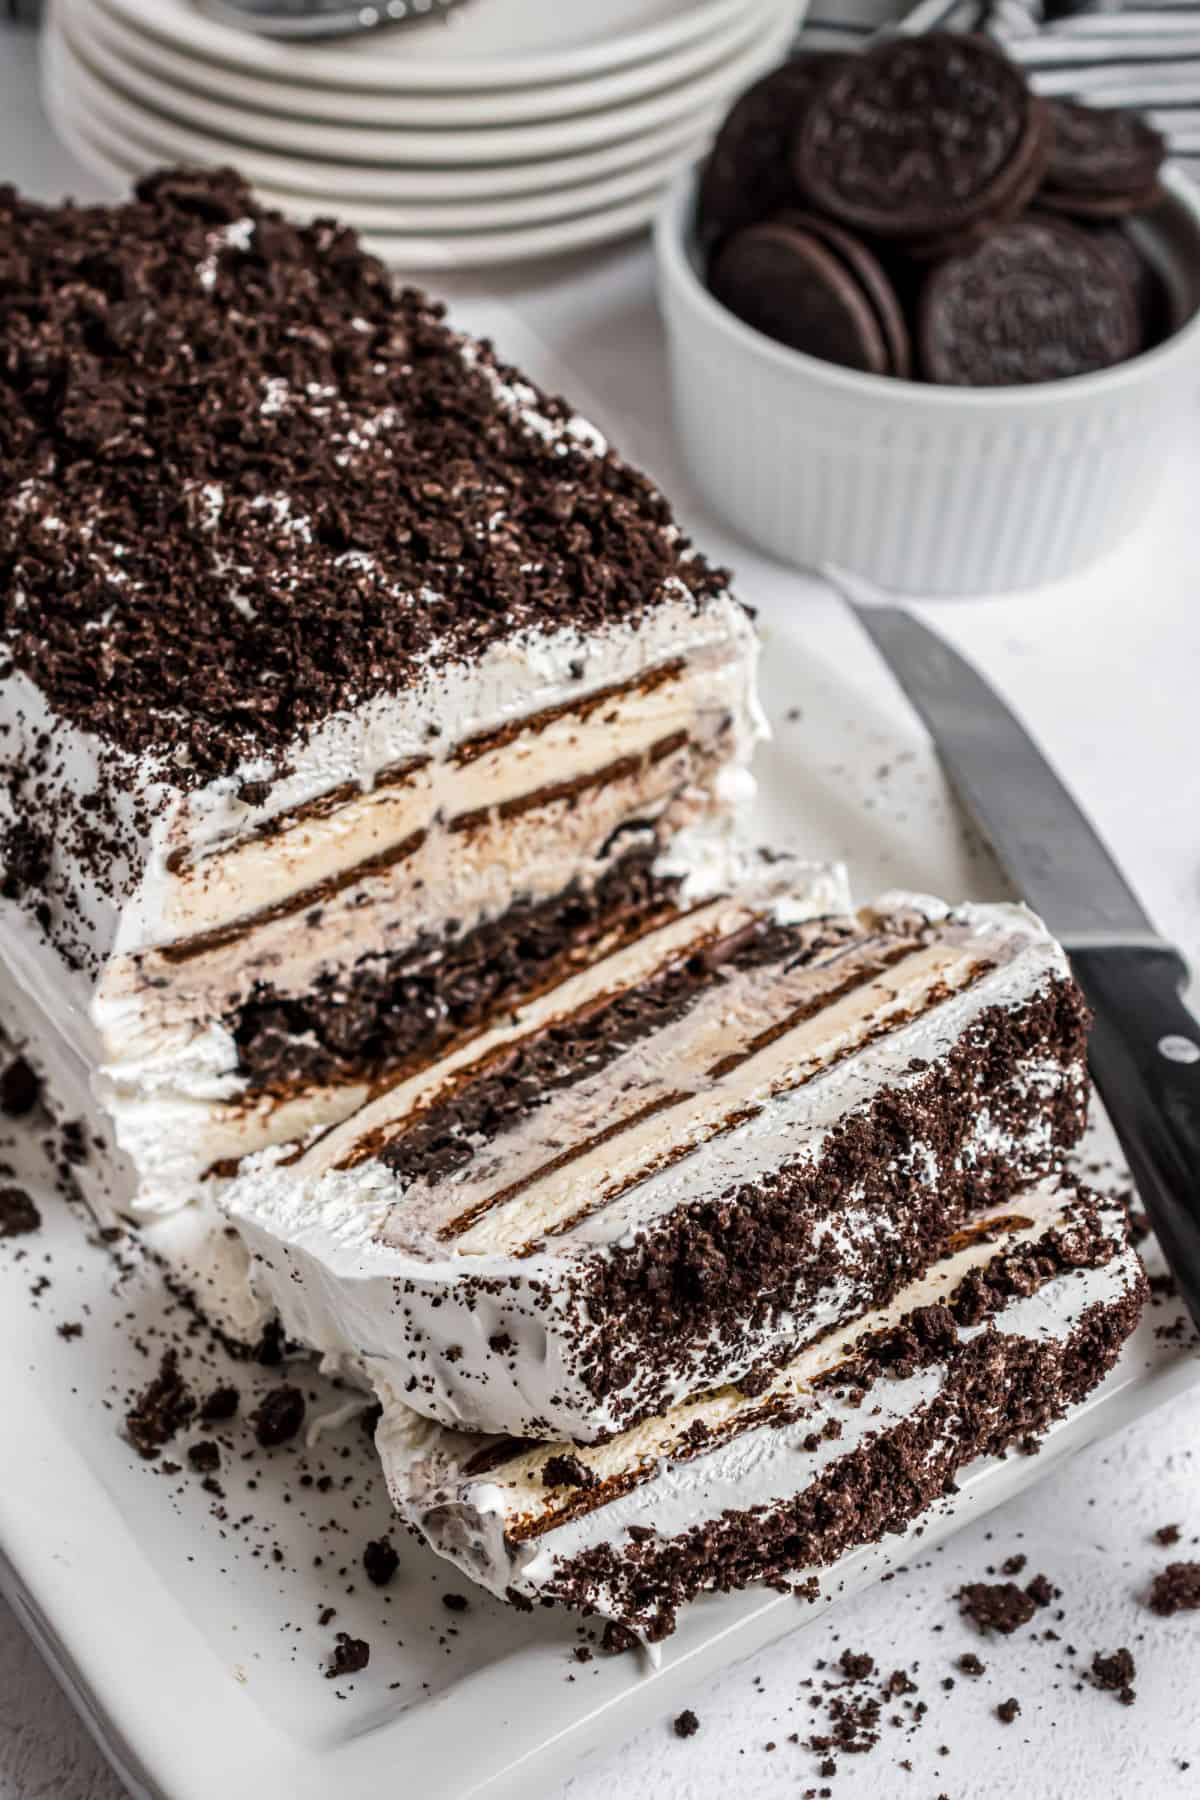 Oreo ice cream cake with slices made so you can see the filling.